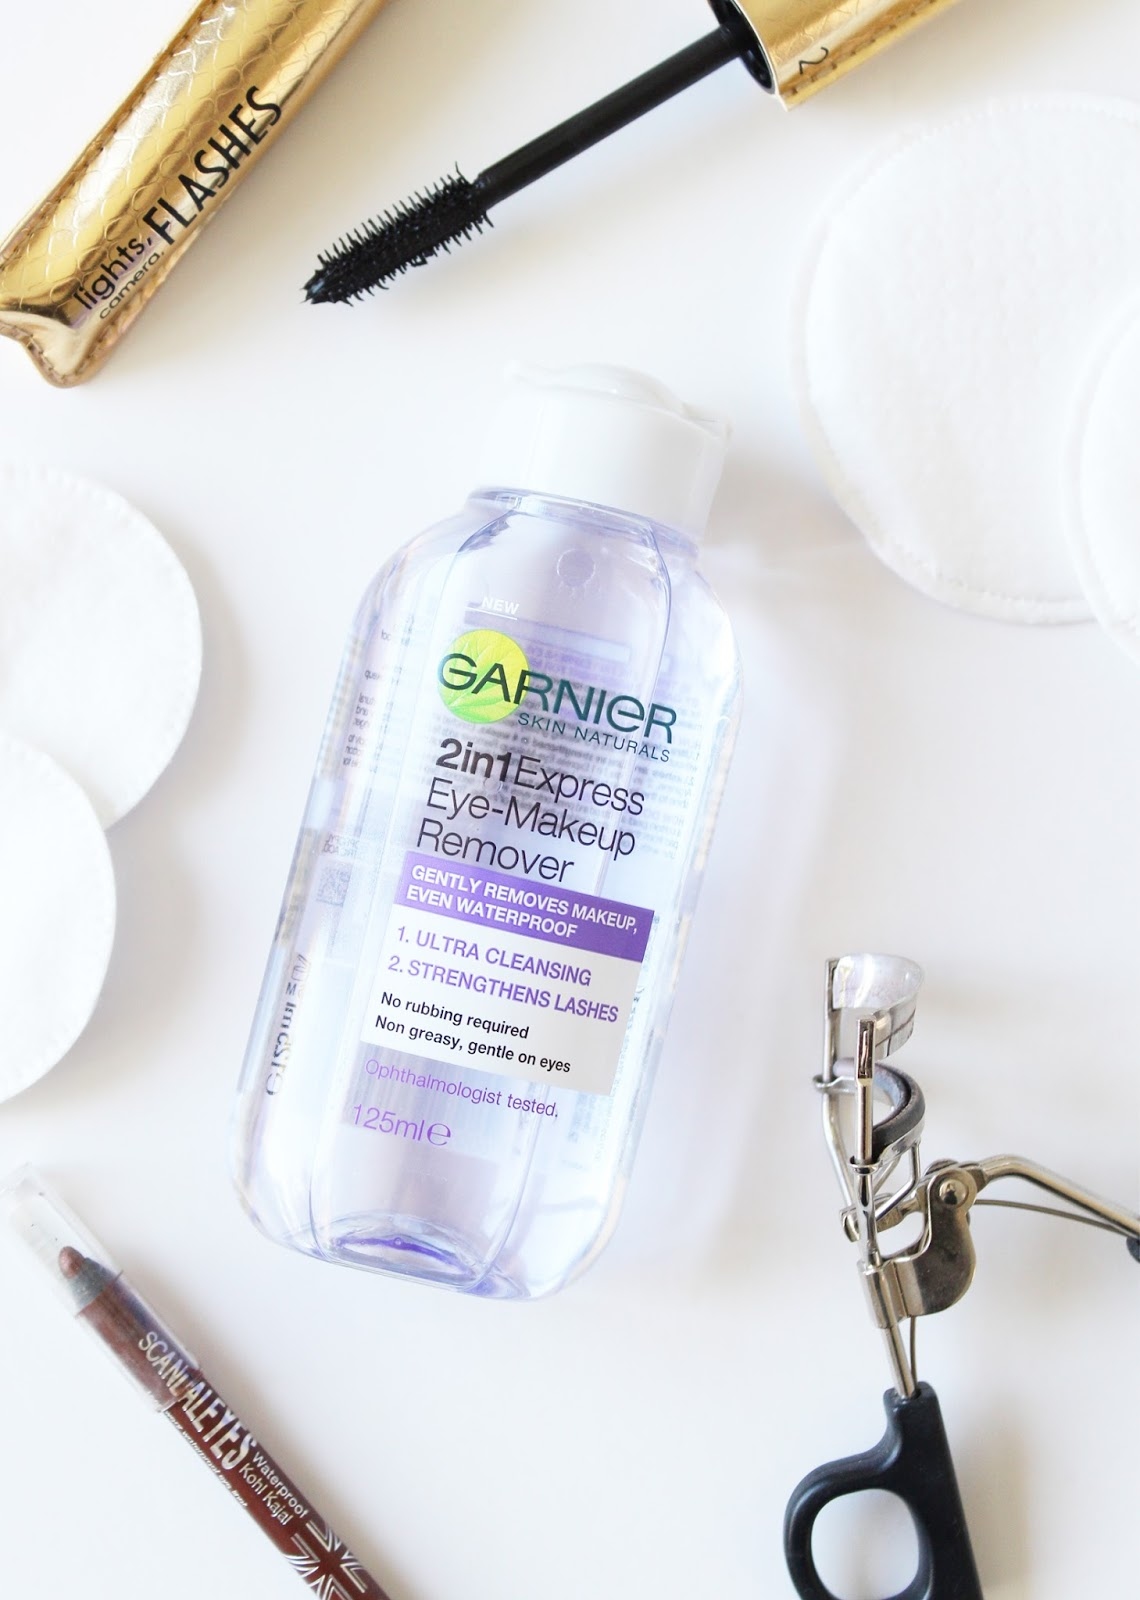 GARNIER | 2-in-1 Express Eye Makeup Remover - Review - CassandraMyee